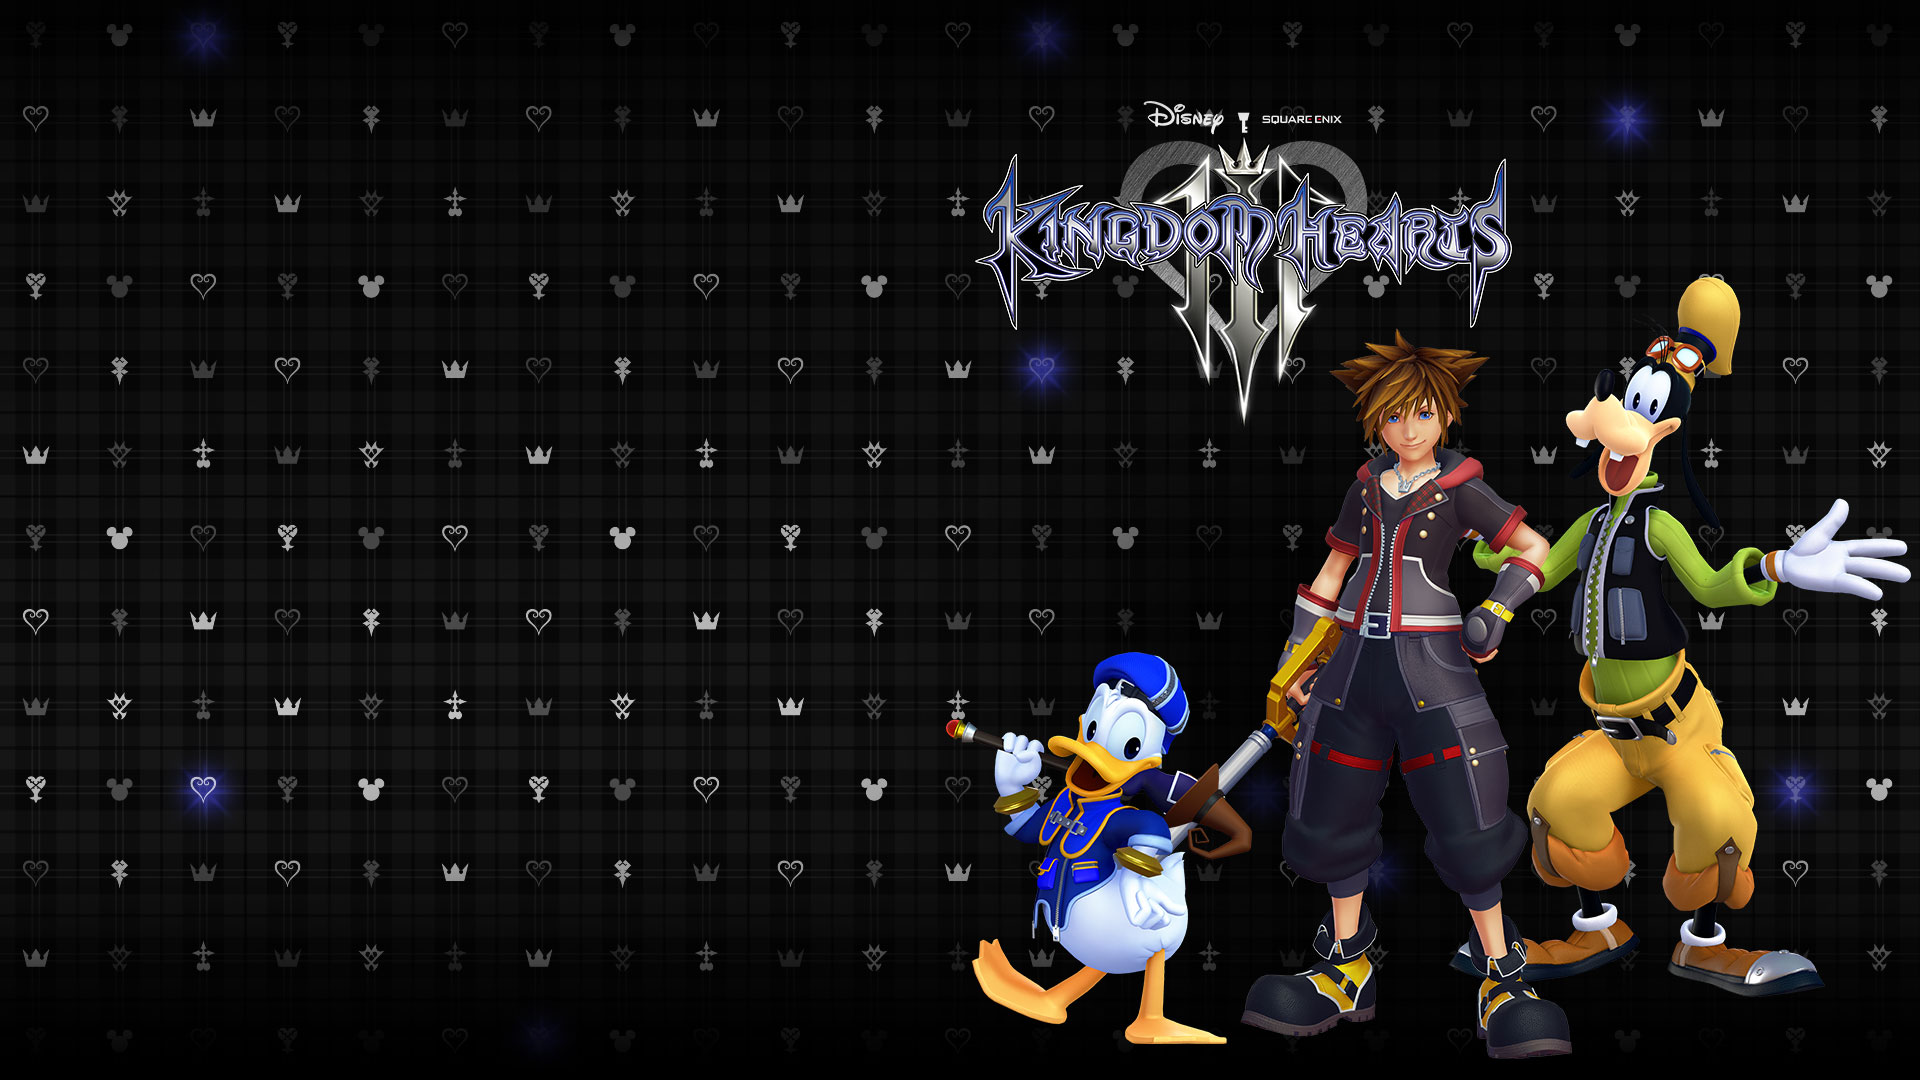 Kingdom Hearts III, front view of Sora, Donald and Goofy in front of a background full of hearts and Mickey Mouse logos